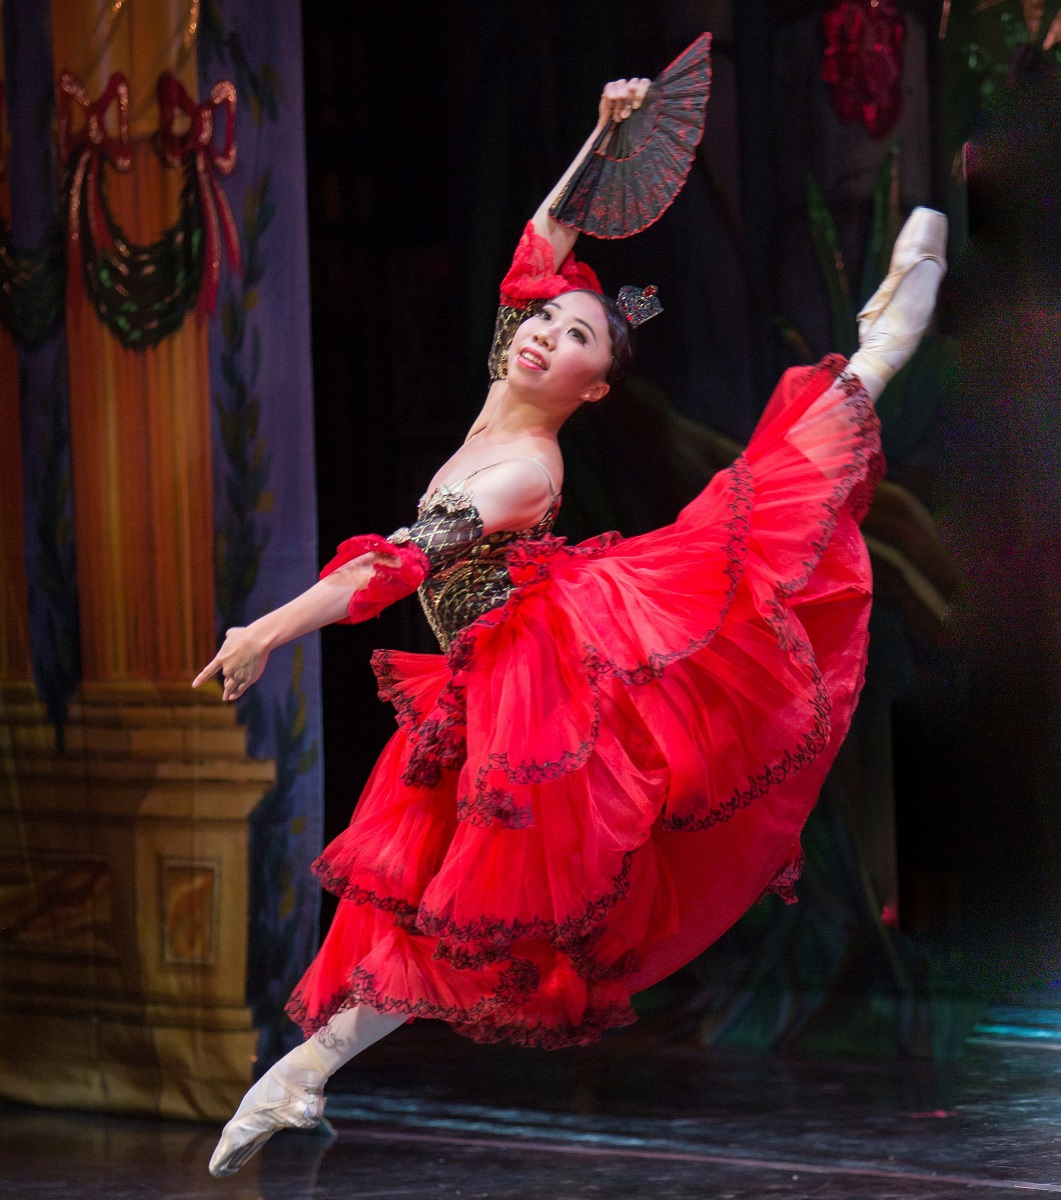 Moscow Ballet's Great Russian Nutcracker Spanish Variation